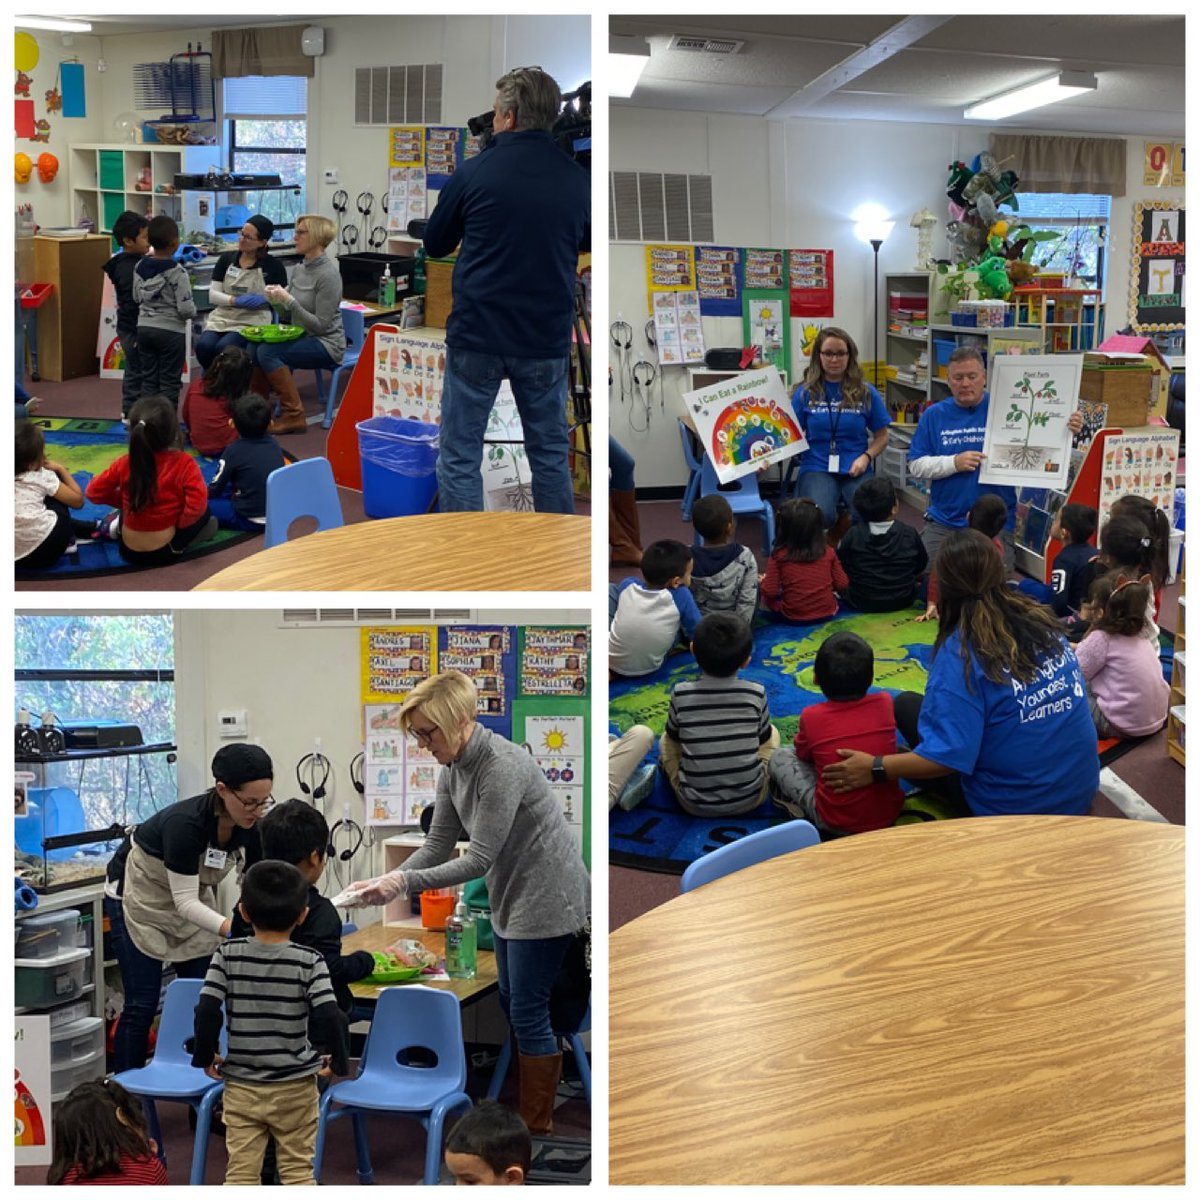 NBC visits ⁦<a target='_blank' href='http://twitter.com/apscspr'>@apscspr</a>⁩ ⁦<a target='_blank' href='http://twitter.com/CarlinSpringsED'>@CarlinSpringsED</a>⁩ PreK ⁦<a target='_blank' href='http://twitter.com/realfoodforkids'>@realfoodforkids</a>⁩ to help promote healthy foods!! 🍅 🥗 🥕 <a target='_blank' href='https://t.co/di58nC2b4B'>https://t.co/di58nC2b4B</a>